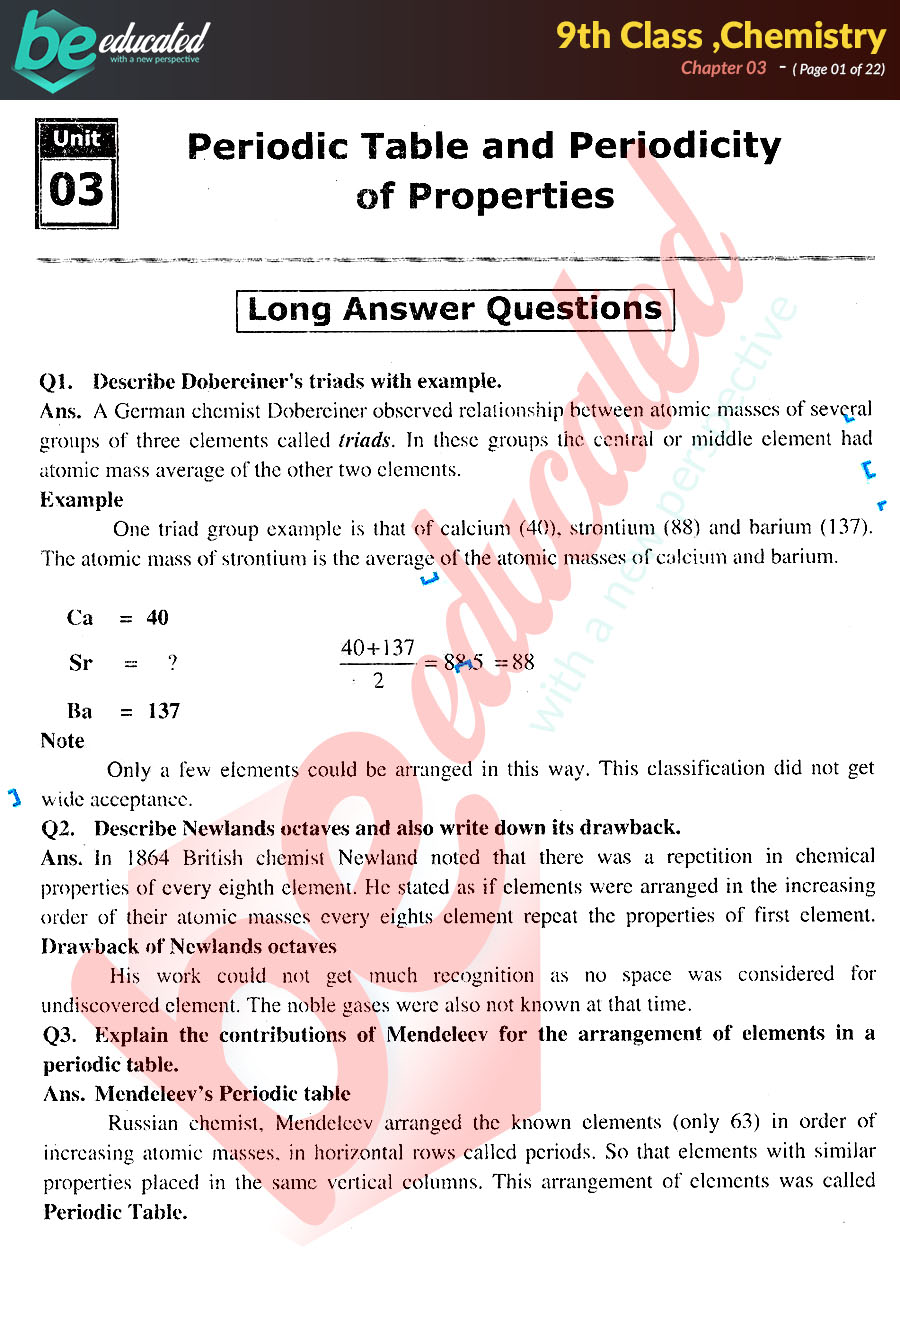 Chapter 3 Chemistry 9th Class Notes - Matric Part 1 Notes